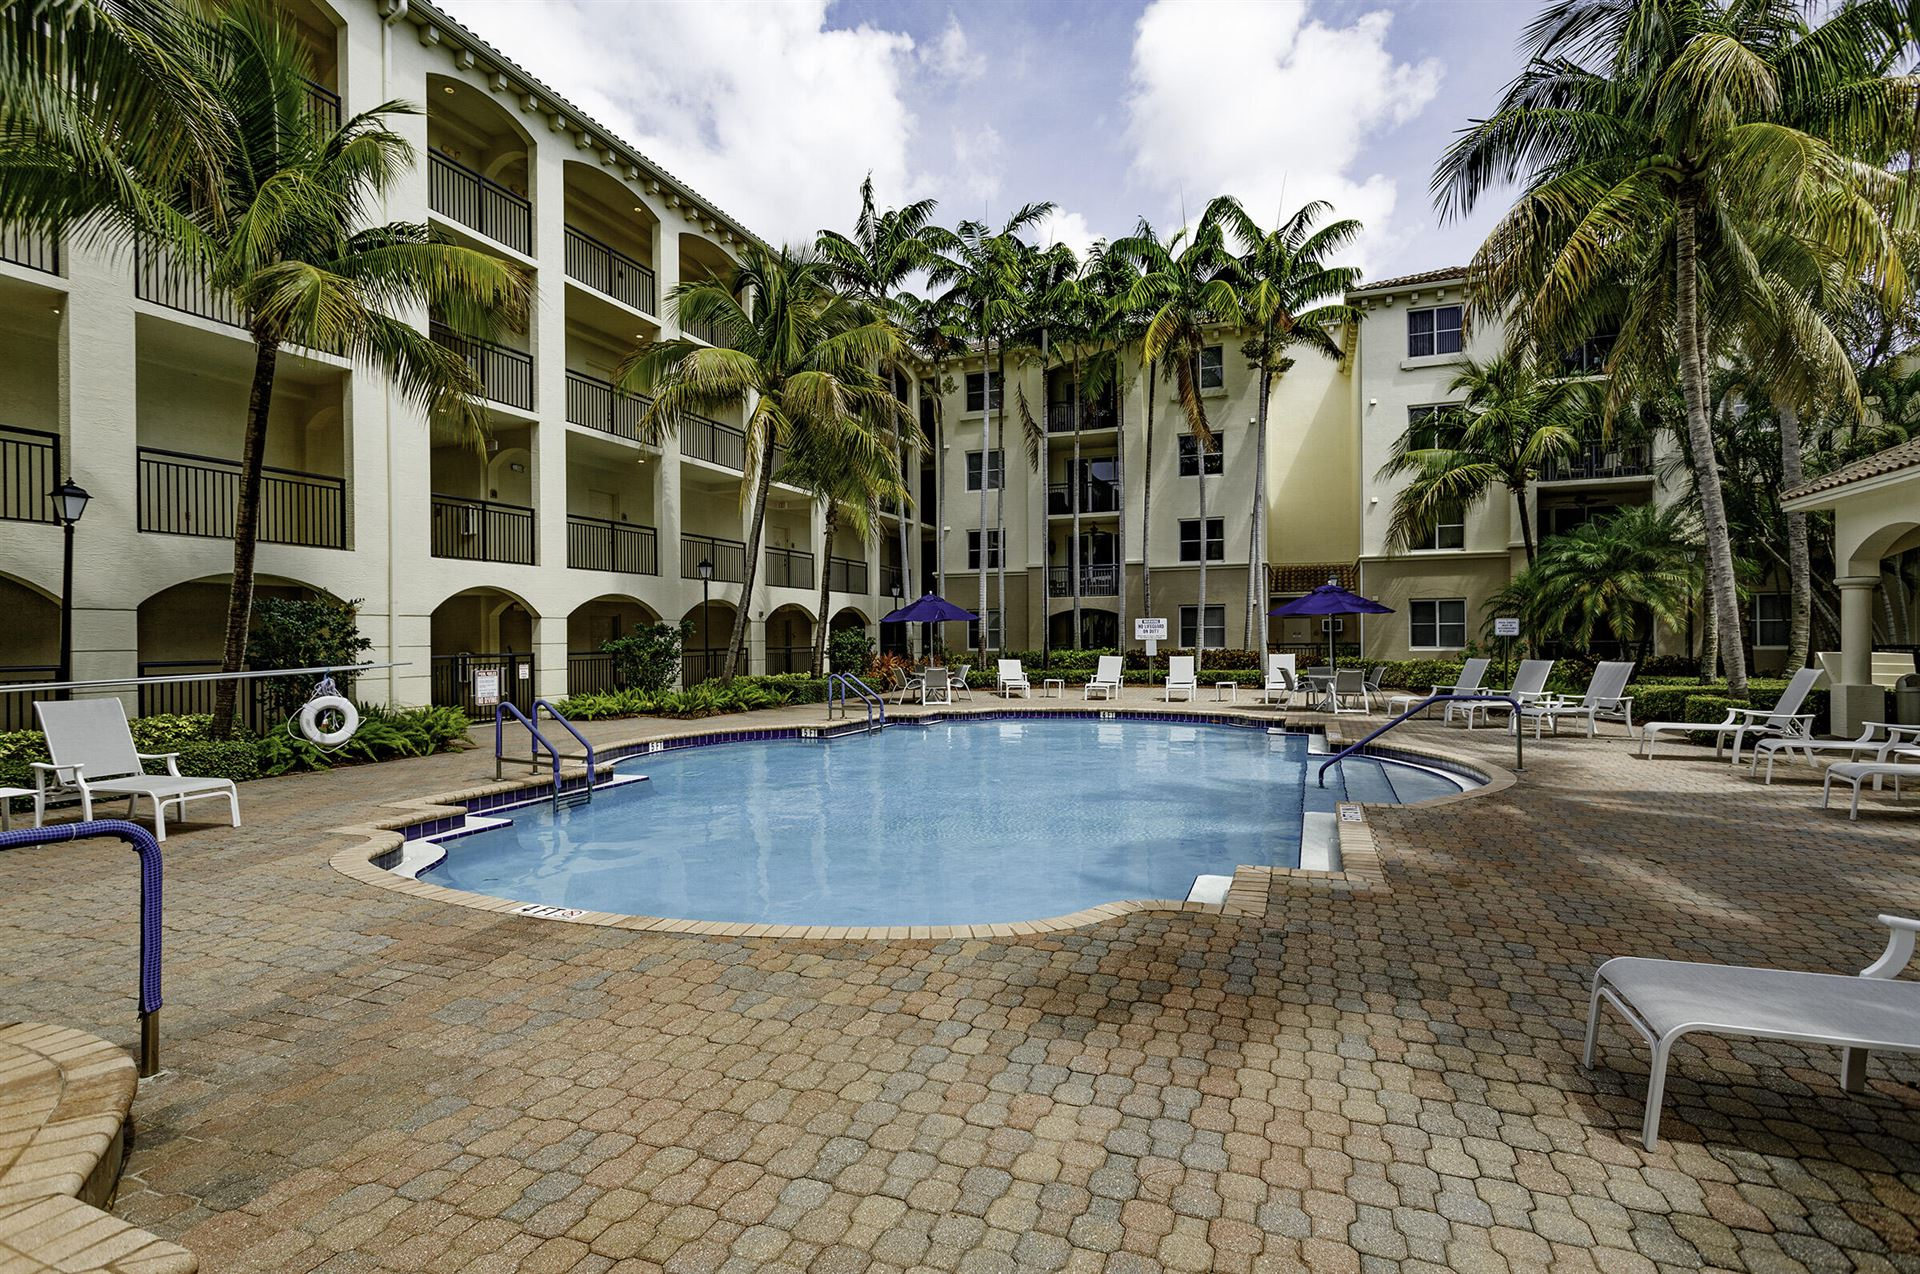 1320 Renaissance Way #320, Boynton Beach, FL 33426 - MLS#: RX-10712561